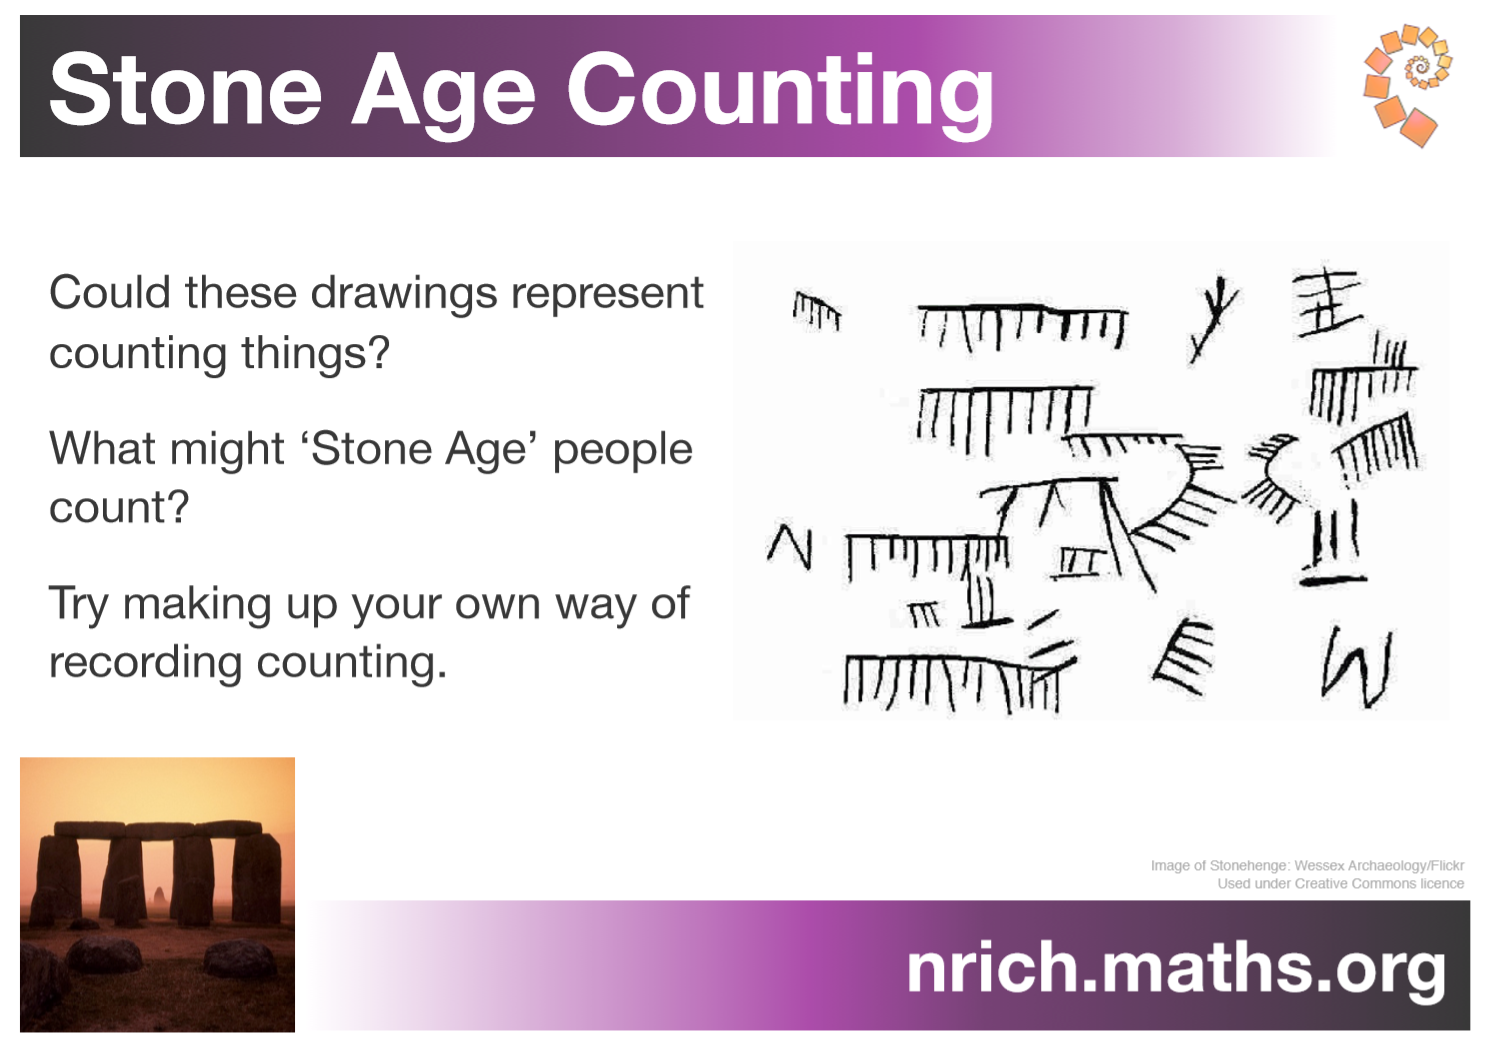 Stone Age Counting Poster : nrich.maths.org